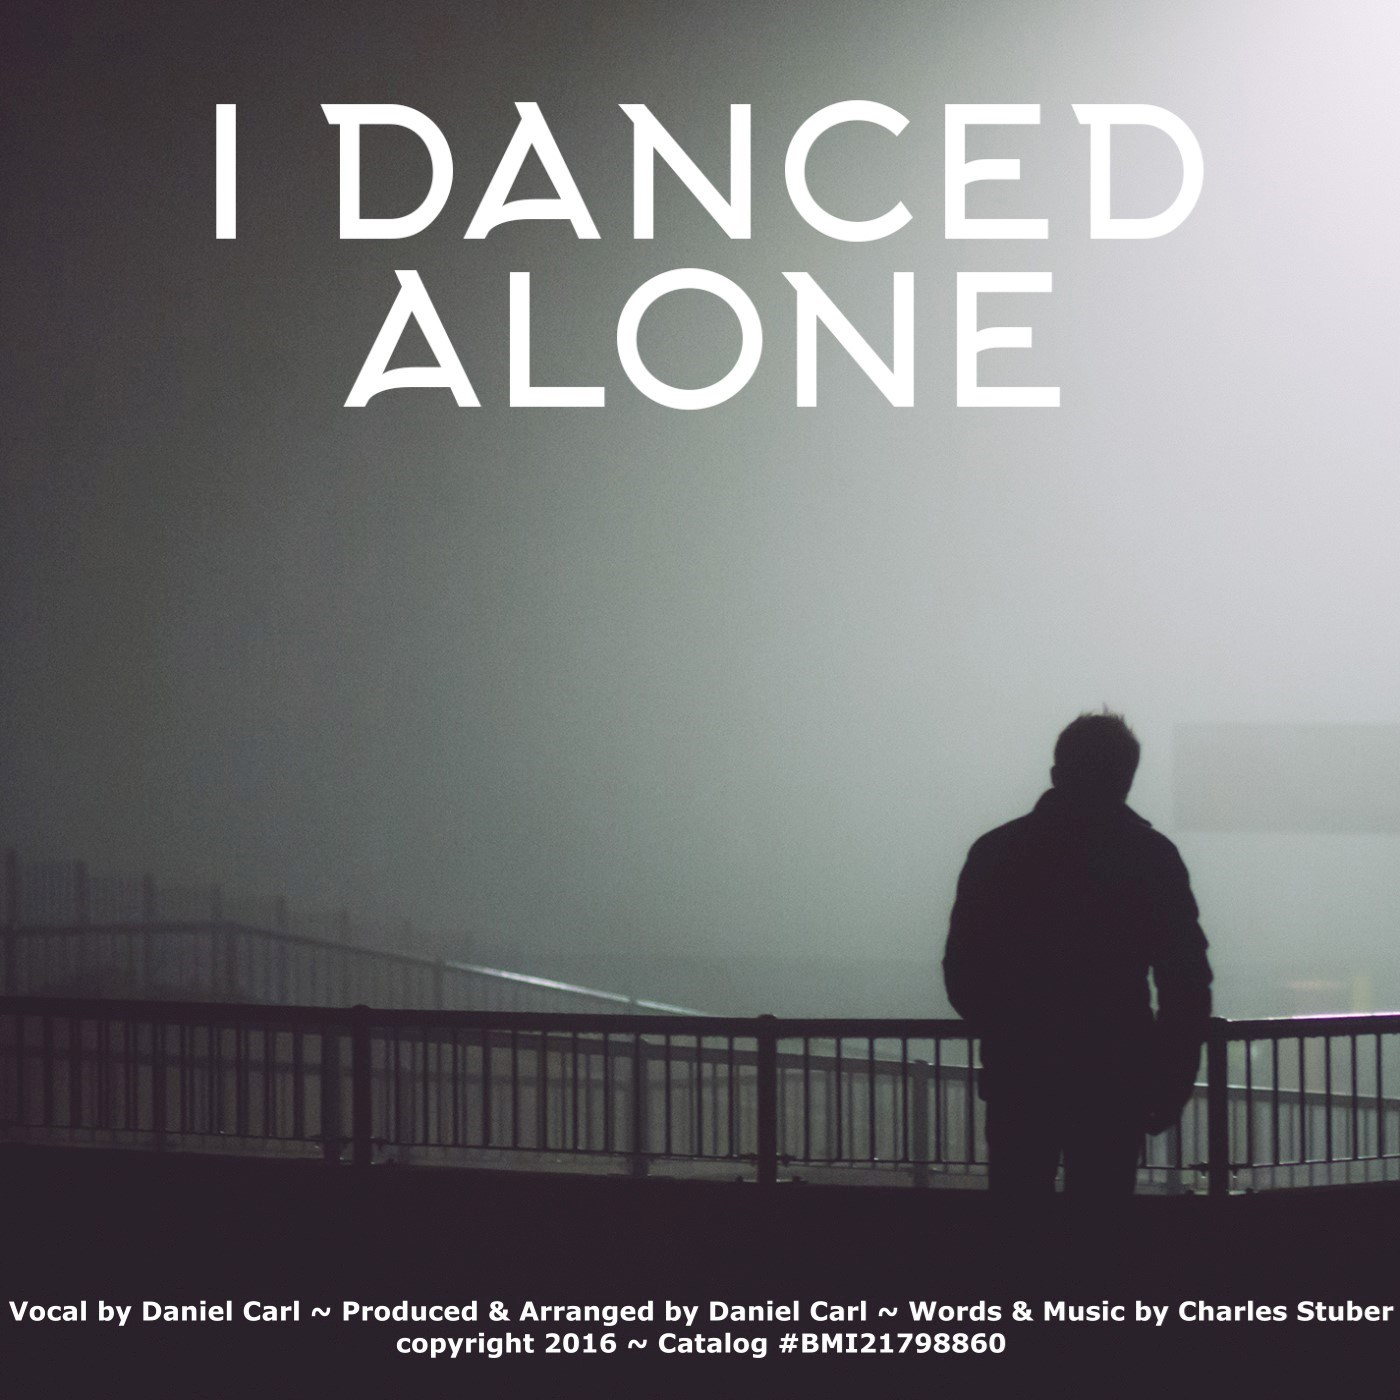 I Danced Alone